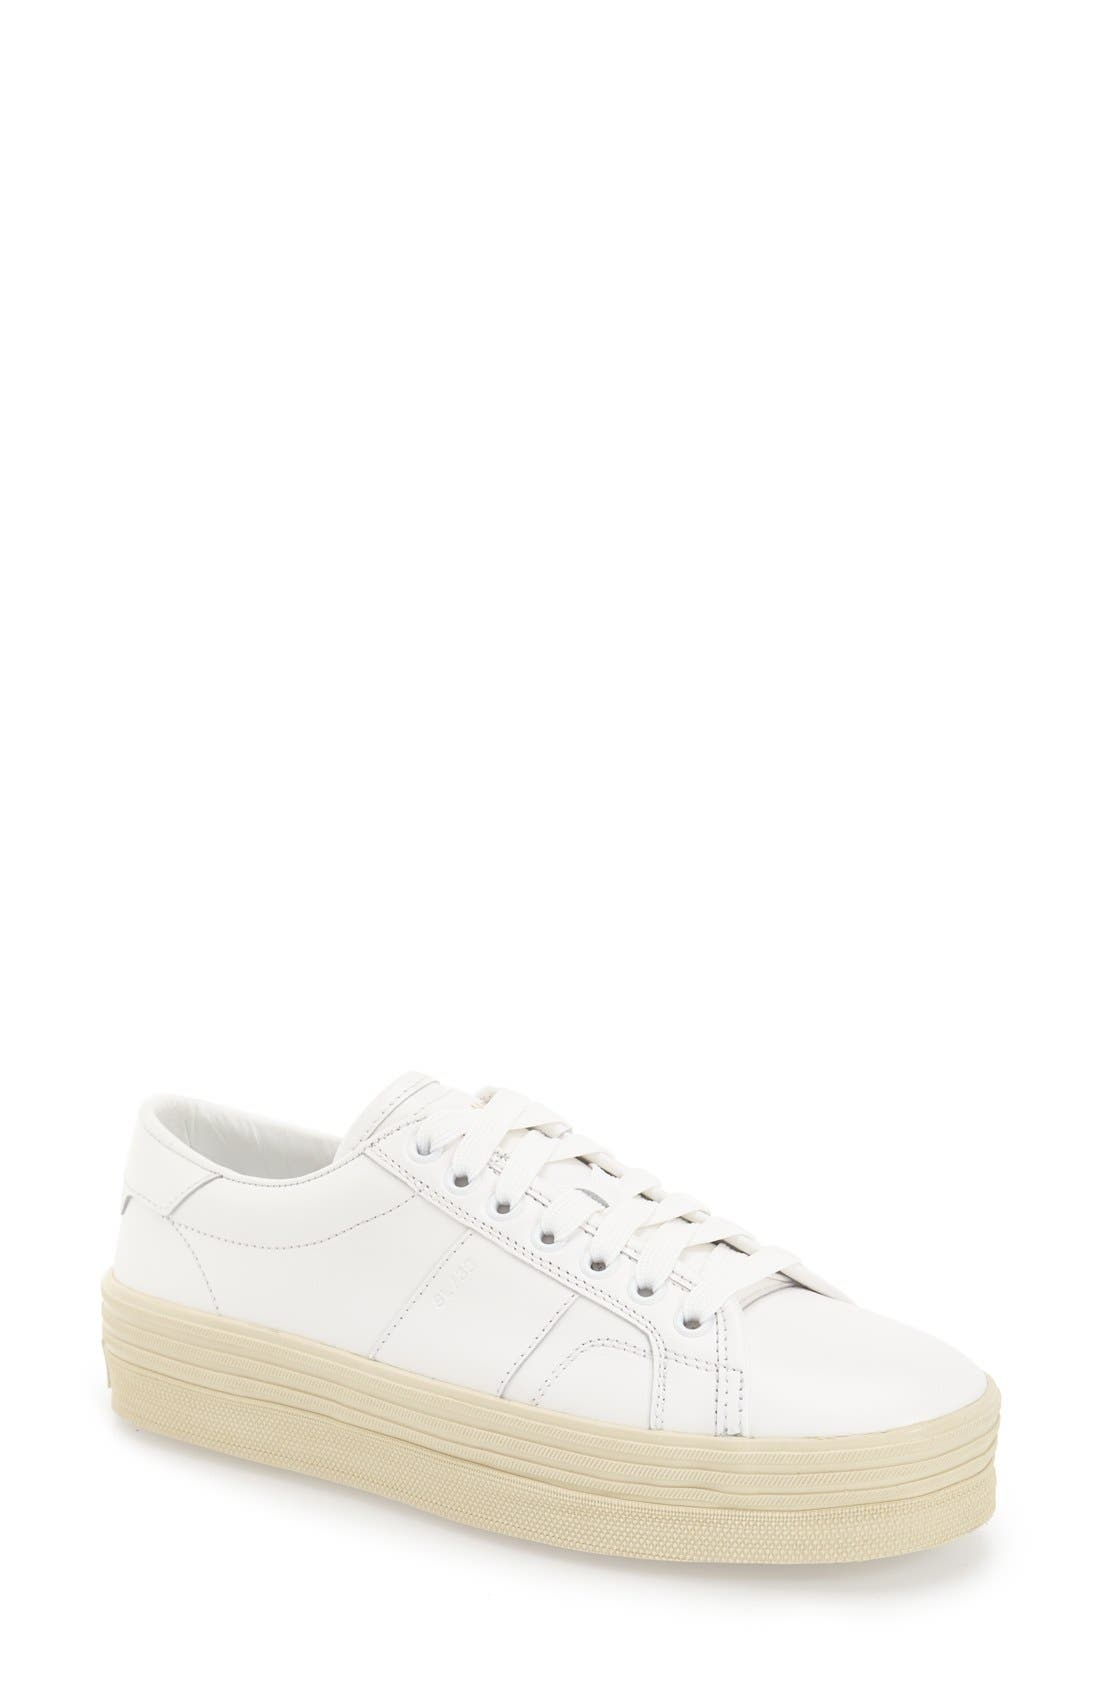 Main Image - Saint Laurent Double Sole Sneaker (Women)